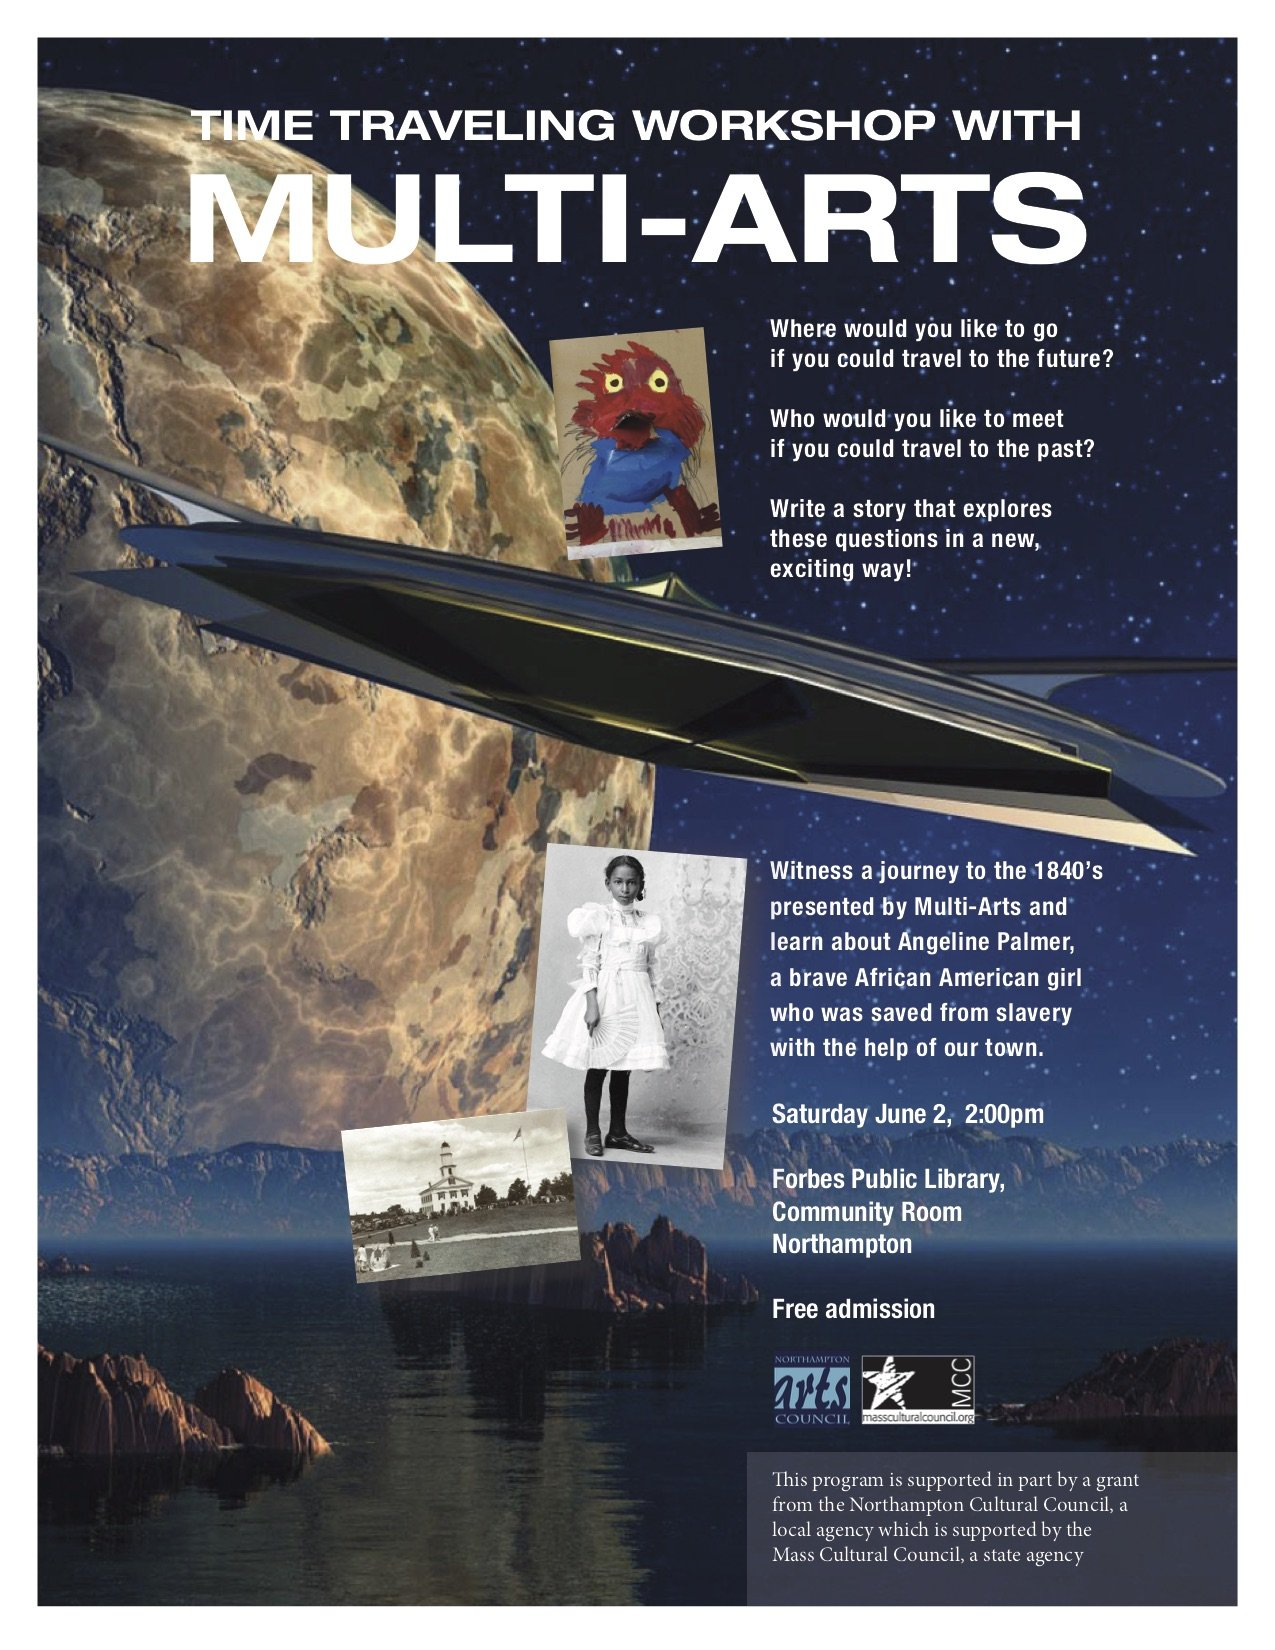 Time traveling to the past or the future with Multi-Arts